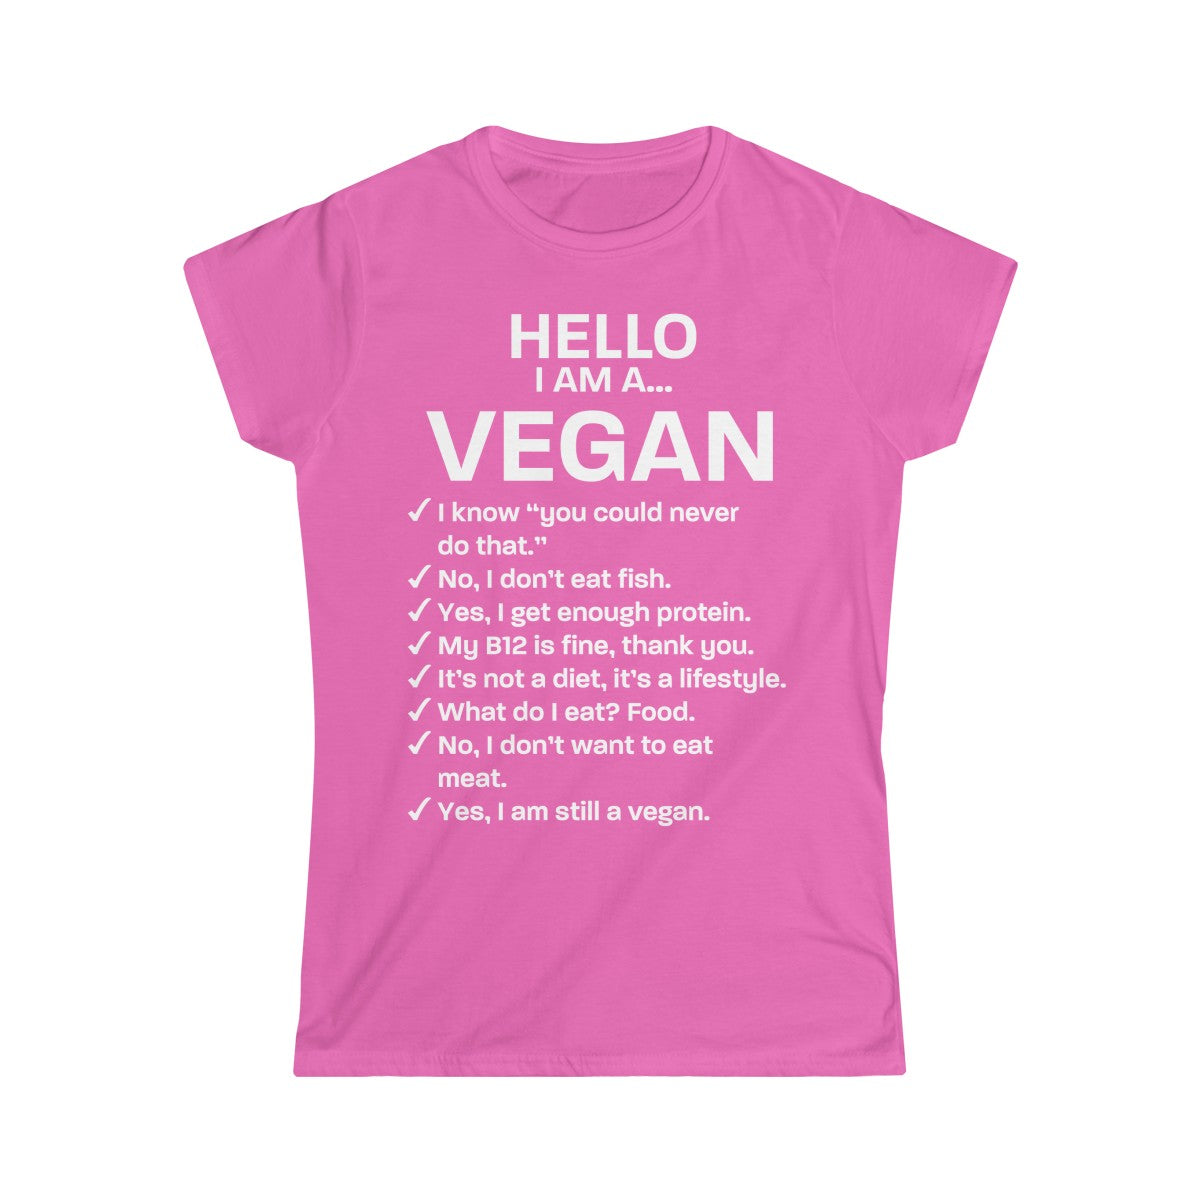 Hello, I am a VEGAN (white text) - Slim Fit T-Shirt - My Vegan Menu